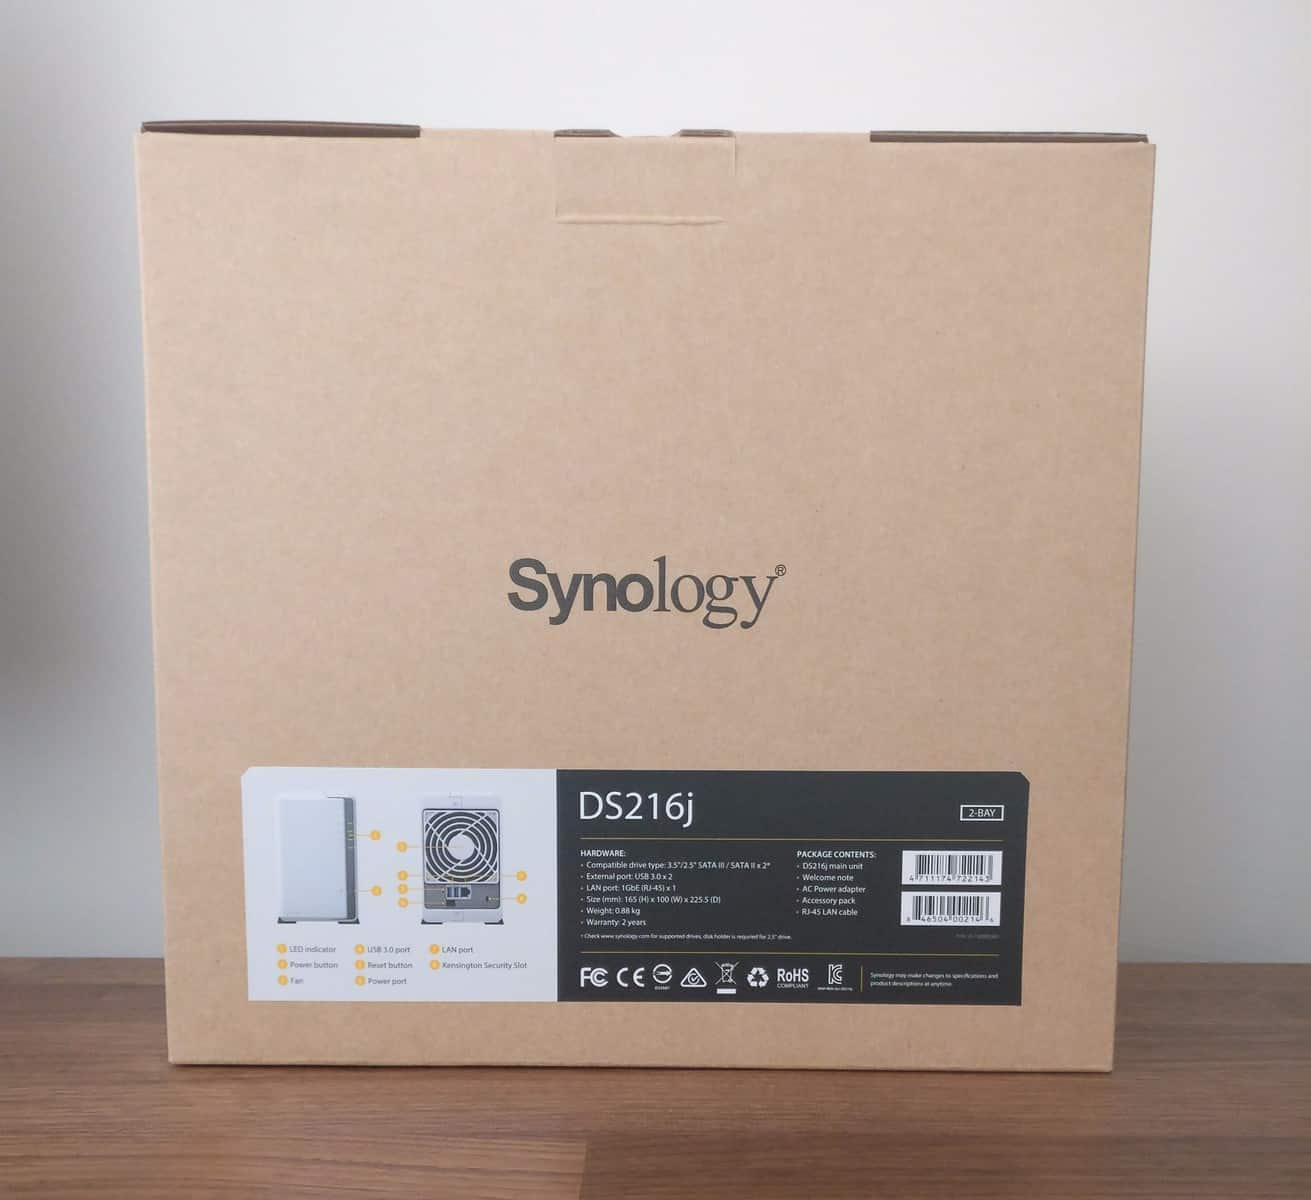 Synology-DS216J-NAS-Photos-03 Synology DS216J 2 Bay NAS Review - The Perfect Backup Solution